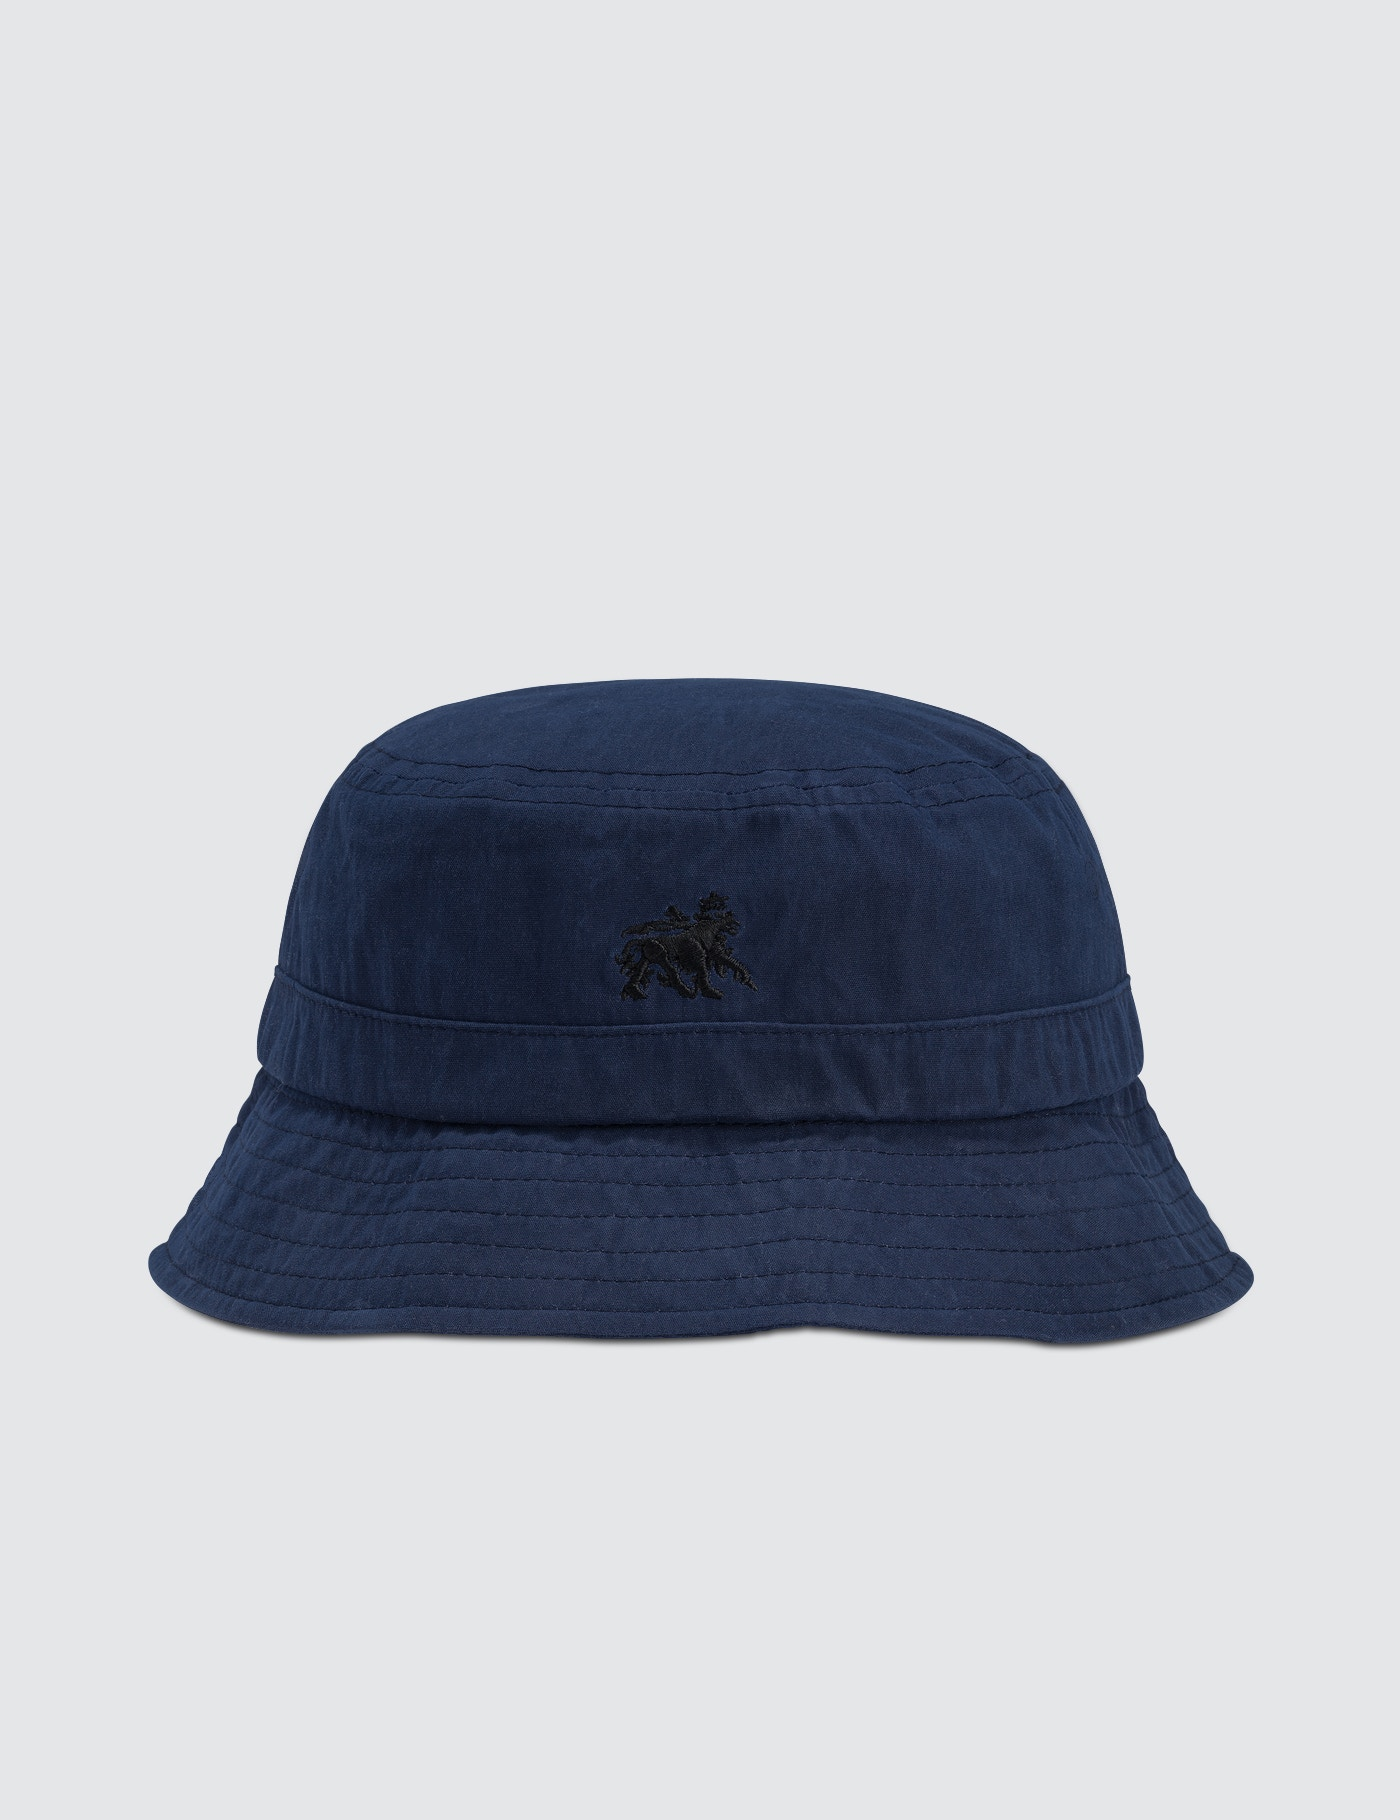 Buy Original Stussy Wax Cotton Lion Bucket Hat at Indonesia  ec3e2532074